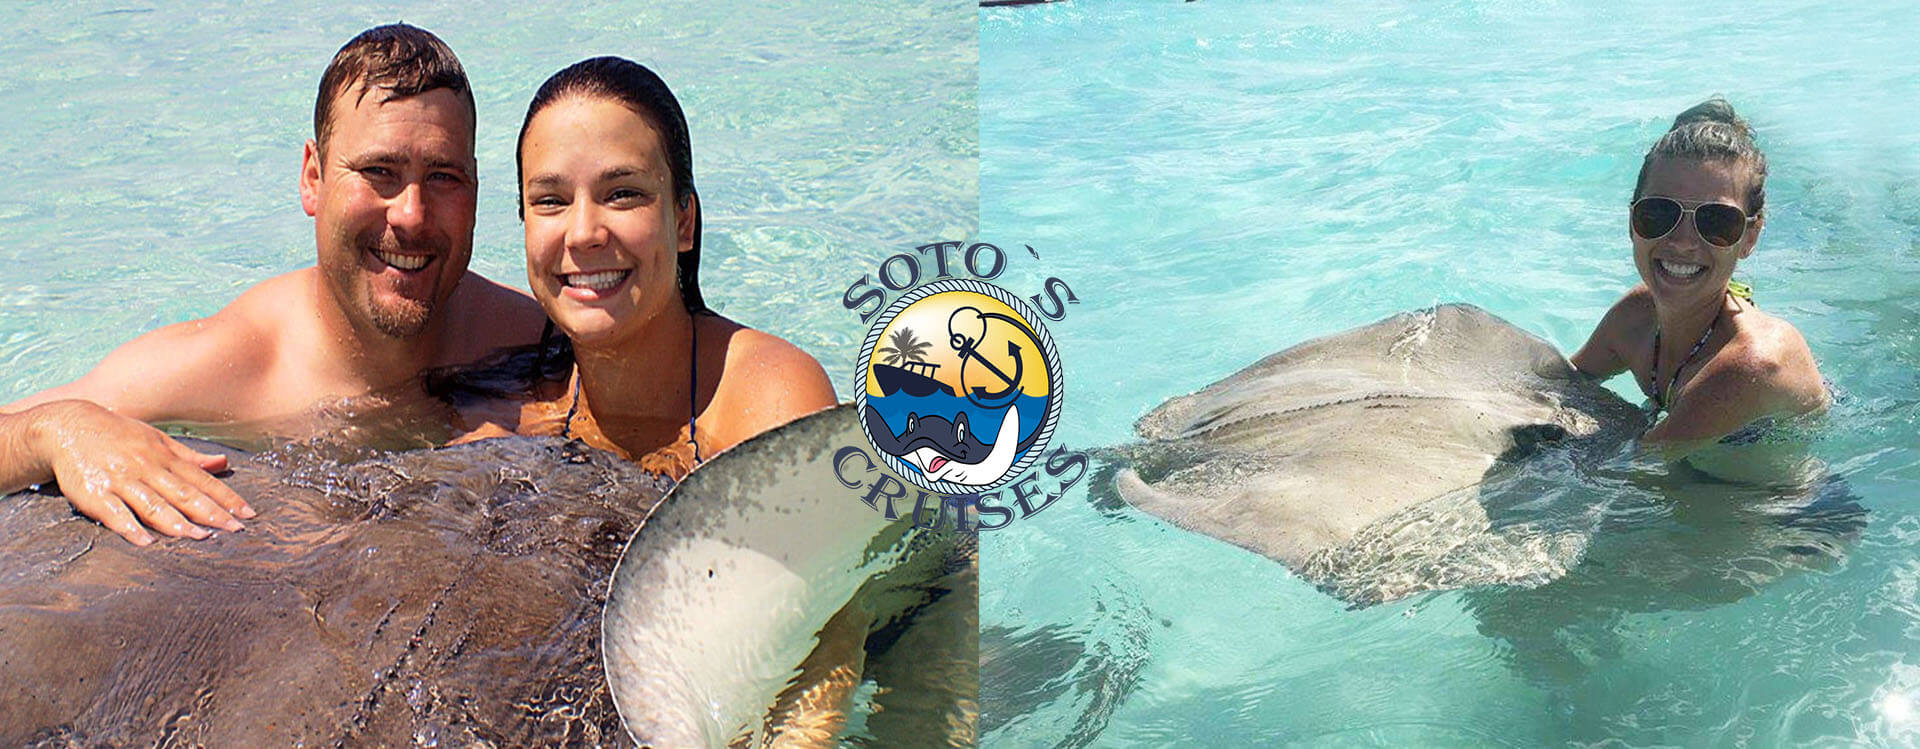 sotos cruises grand cayman stingray city and snorekling tour